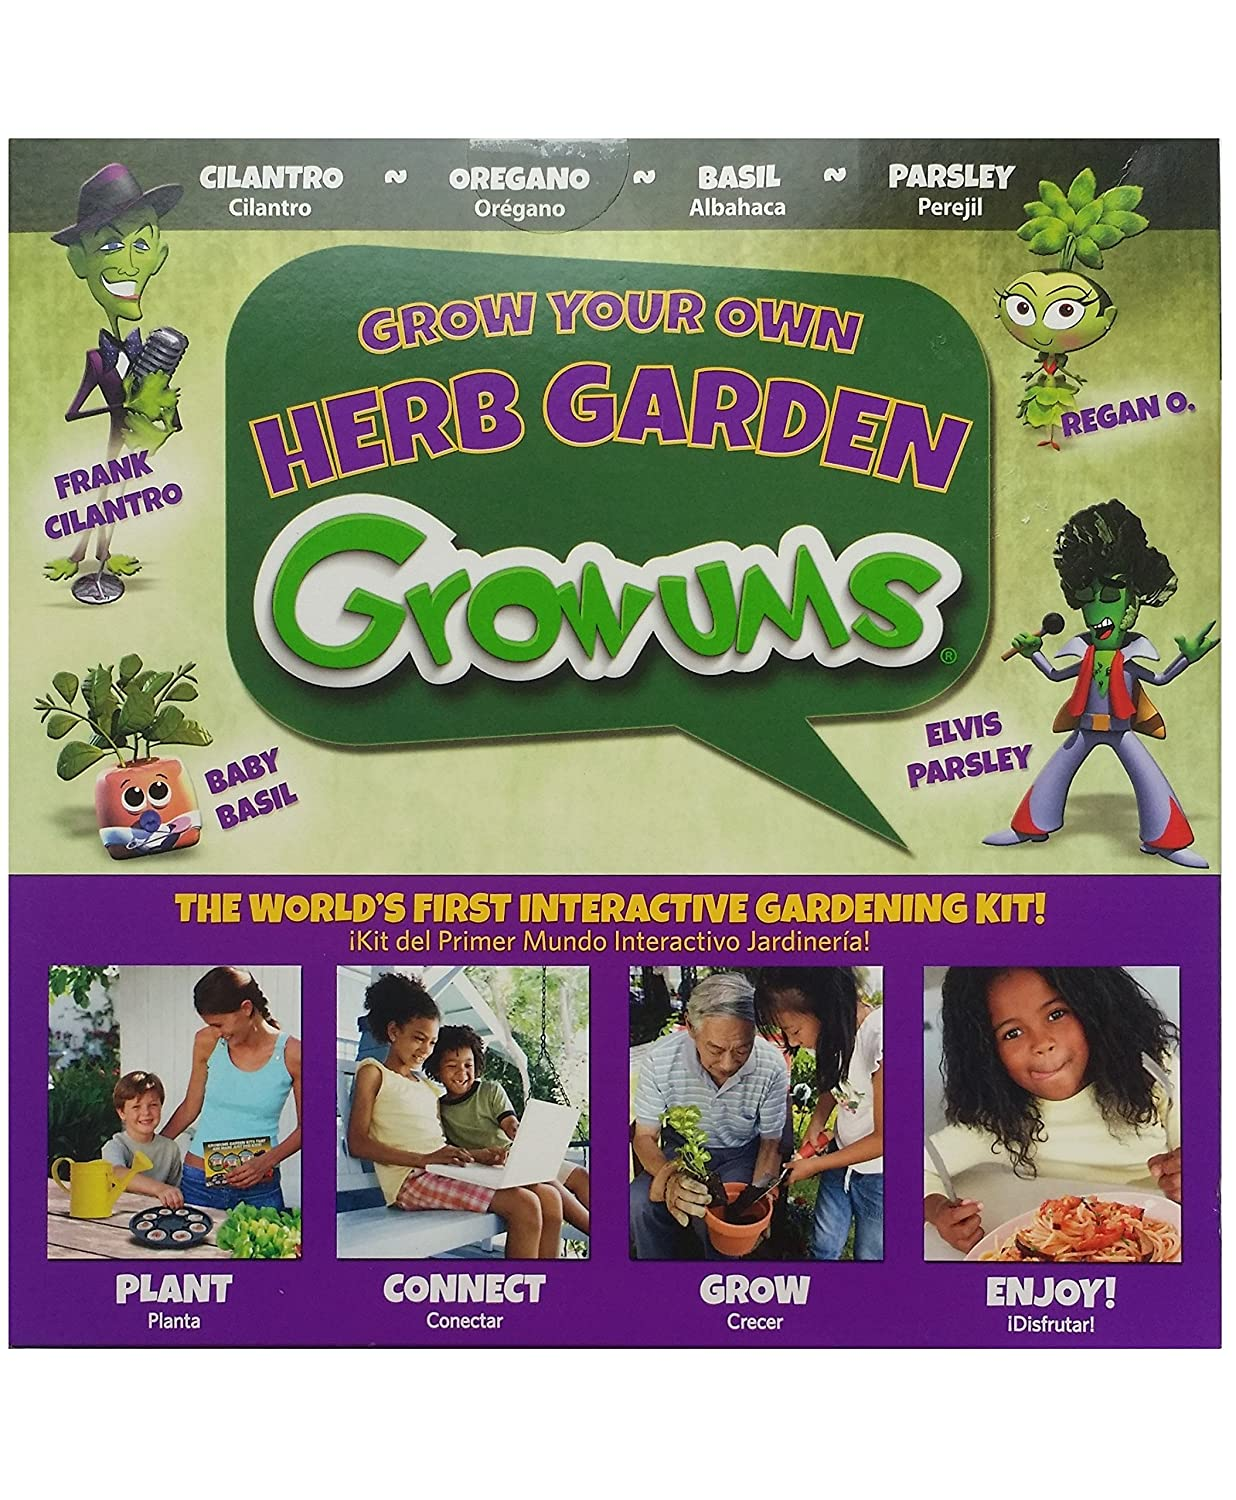 Growums Herb Garden Tray (8 Count)